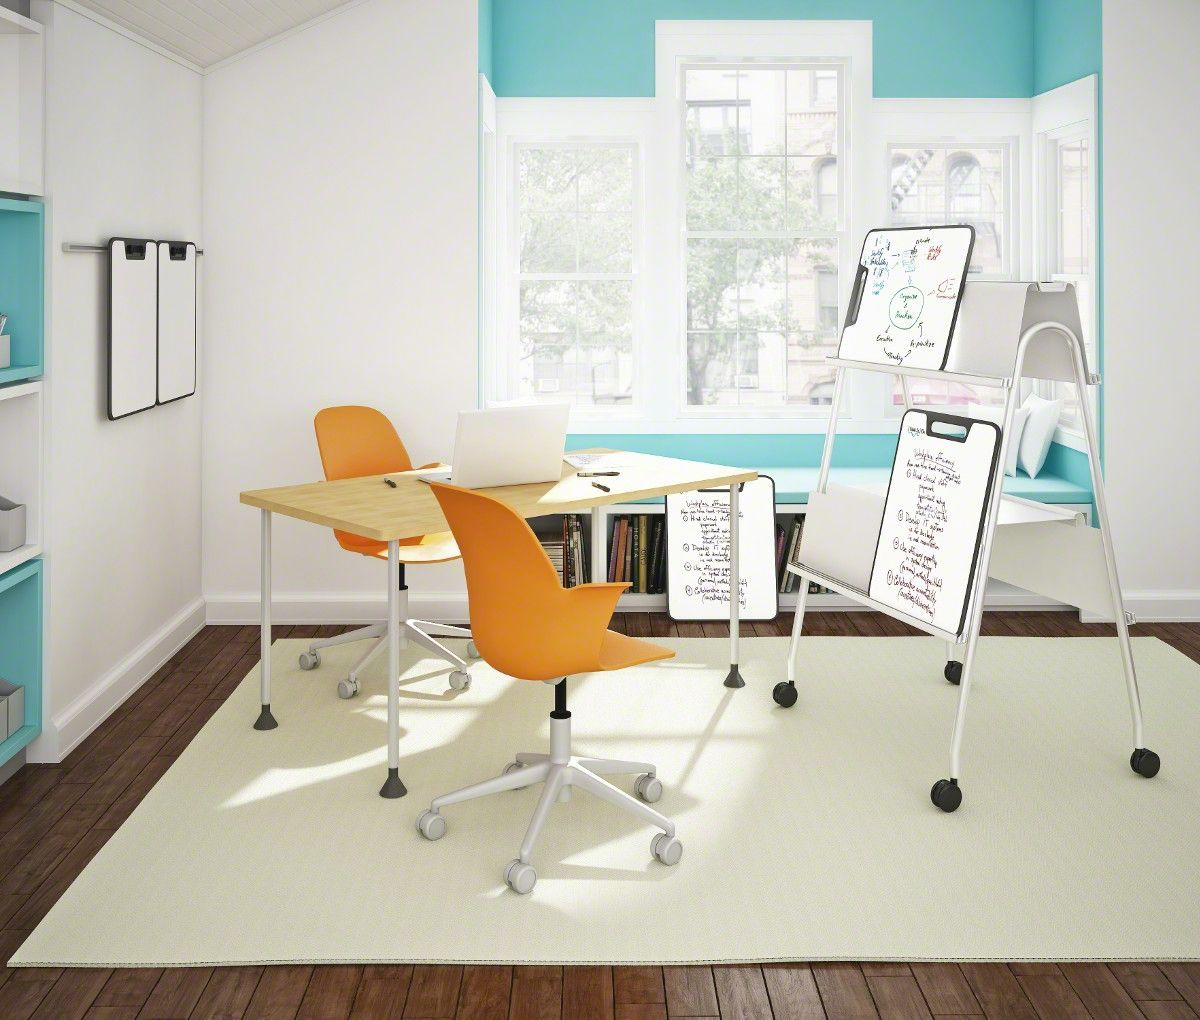 Verb Whiteboard And Dry Erase Board Steelcase Office Furniture Online Classroom Furniture Home Office Furniture